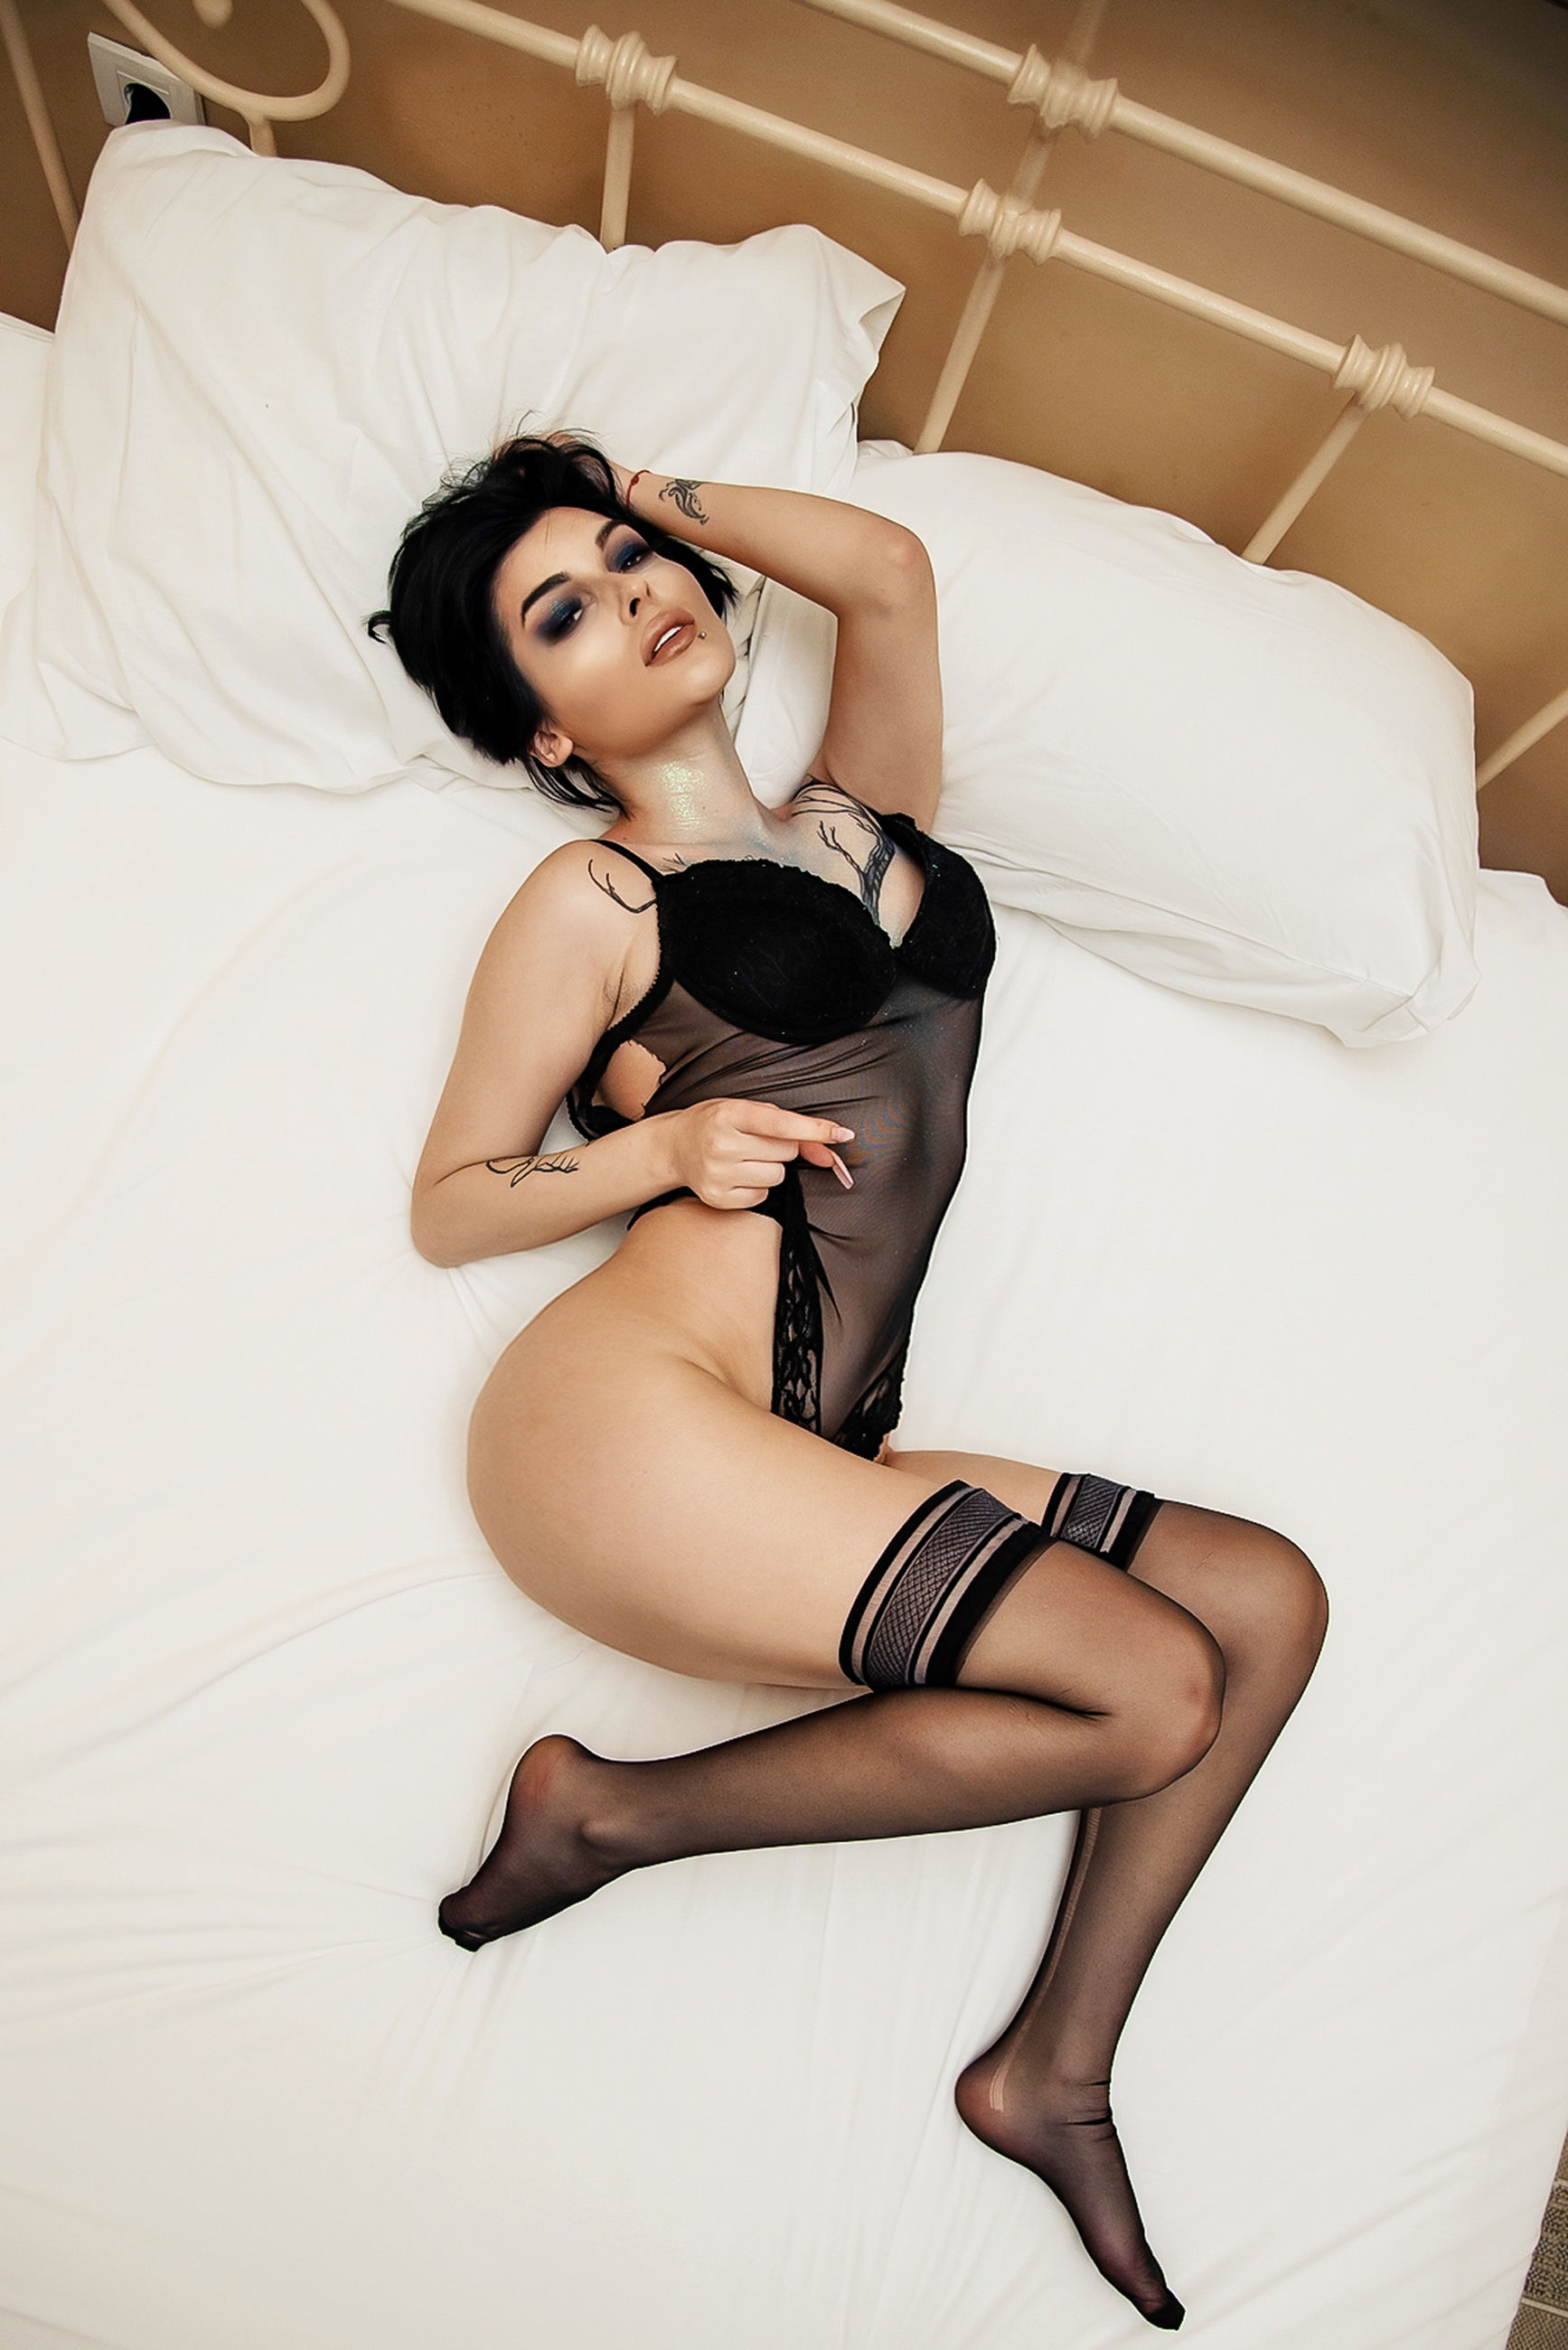 adult, women, one person, young adult, bed, indoors, black hair, clothing, fashion, full length, furniture, portrait, domestic room, limb, bedroom, human leg, underwear, undergarment, lifestyles, female, hairstyle, looking at camera, lying down, lingerie, relaxation, brown hair, long hair, desire, photo shoot, high heels, black, glamour, elegance, shoe, human hair